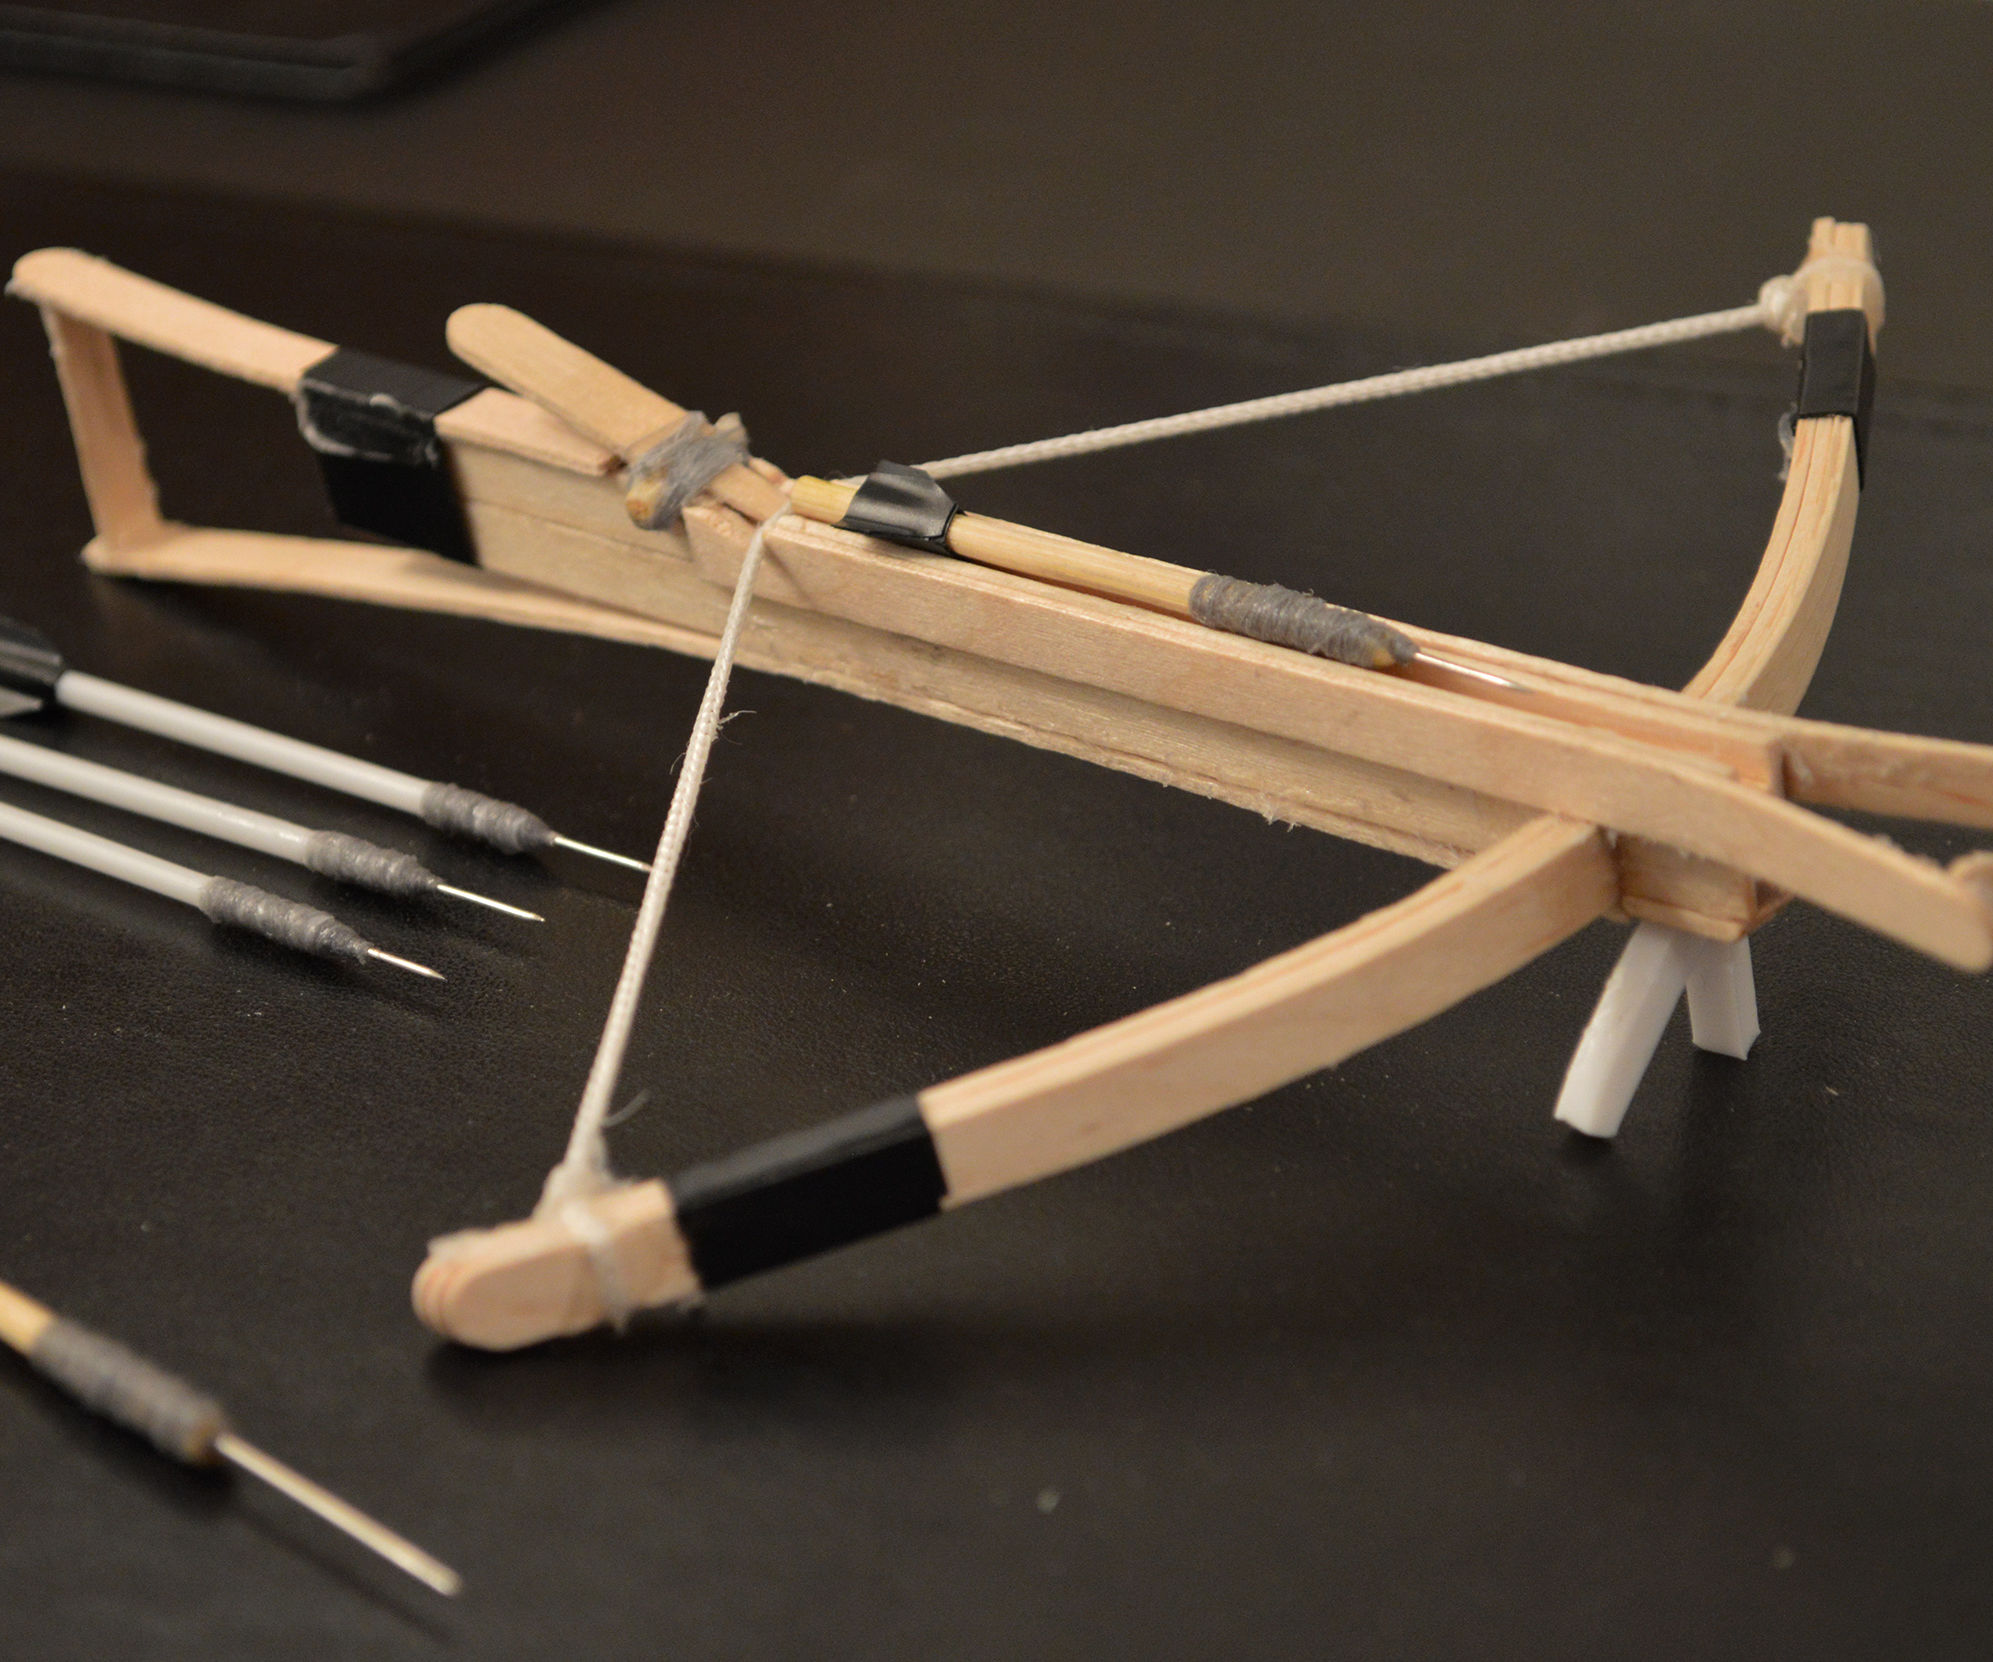 How to Make a Mini Crossbow⸮